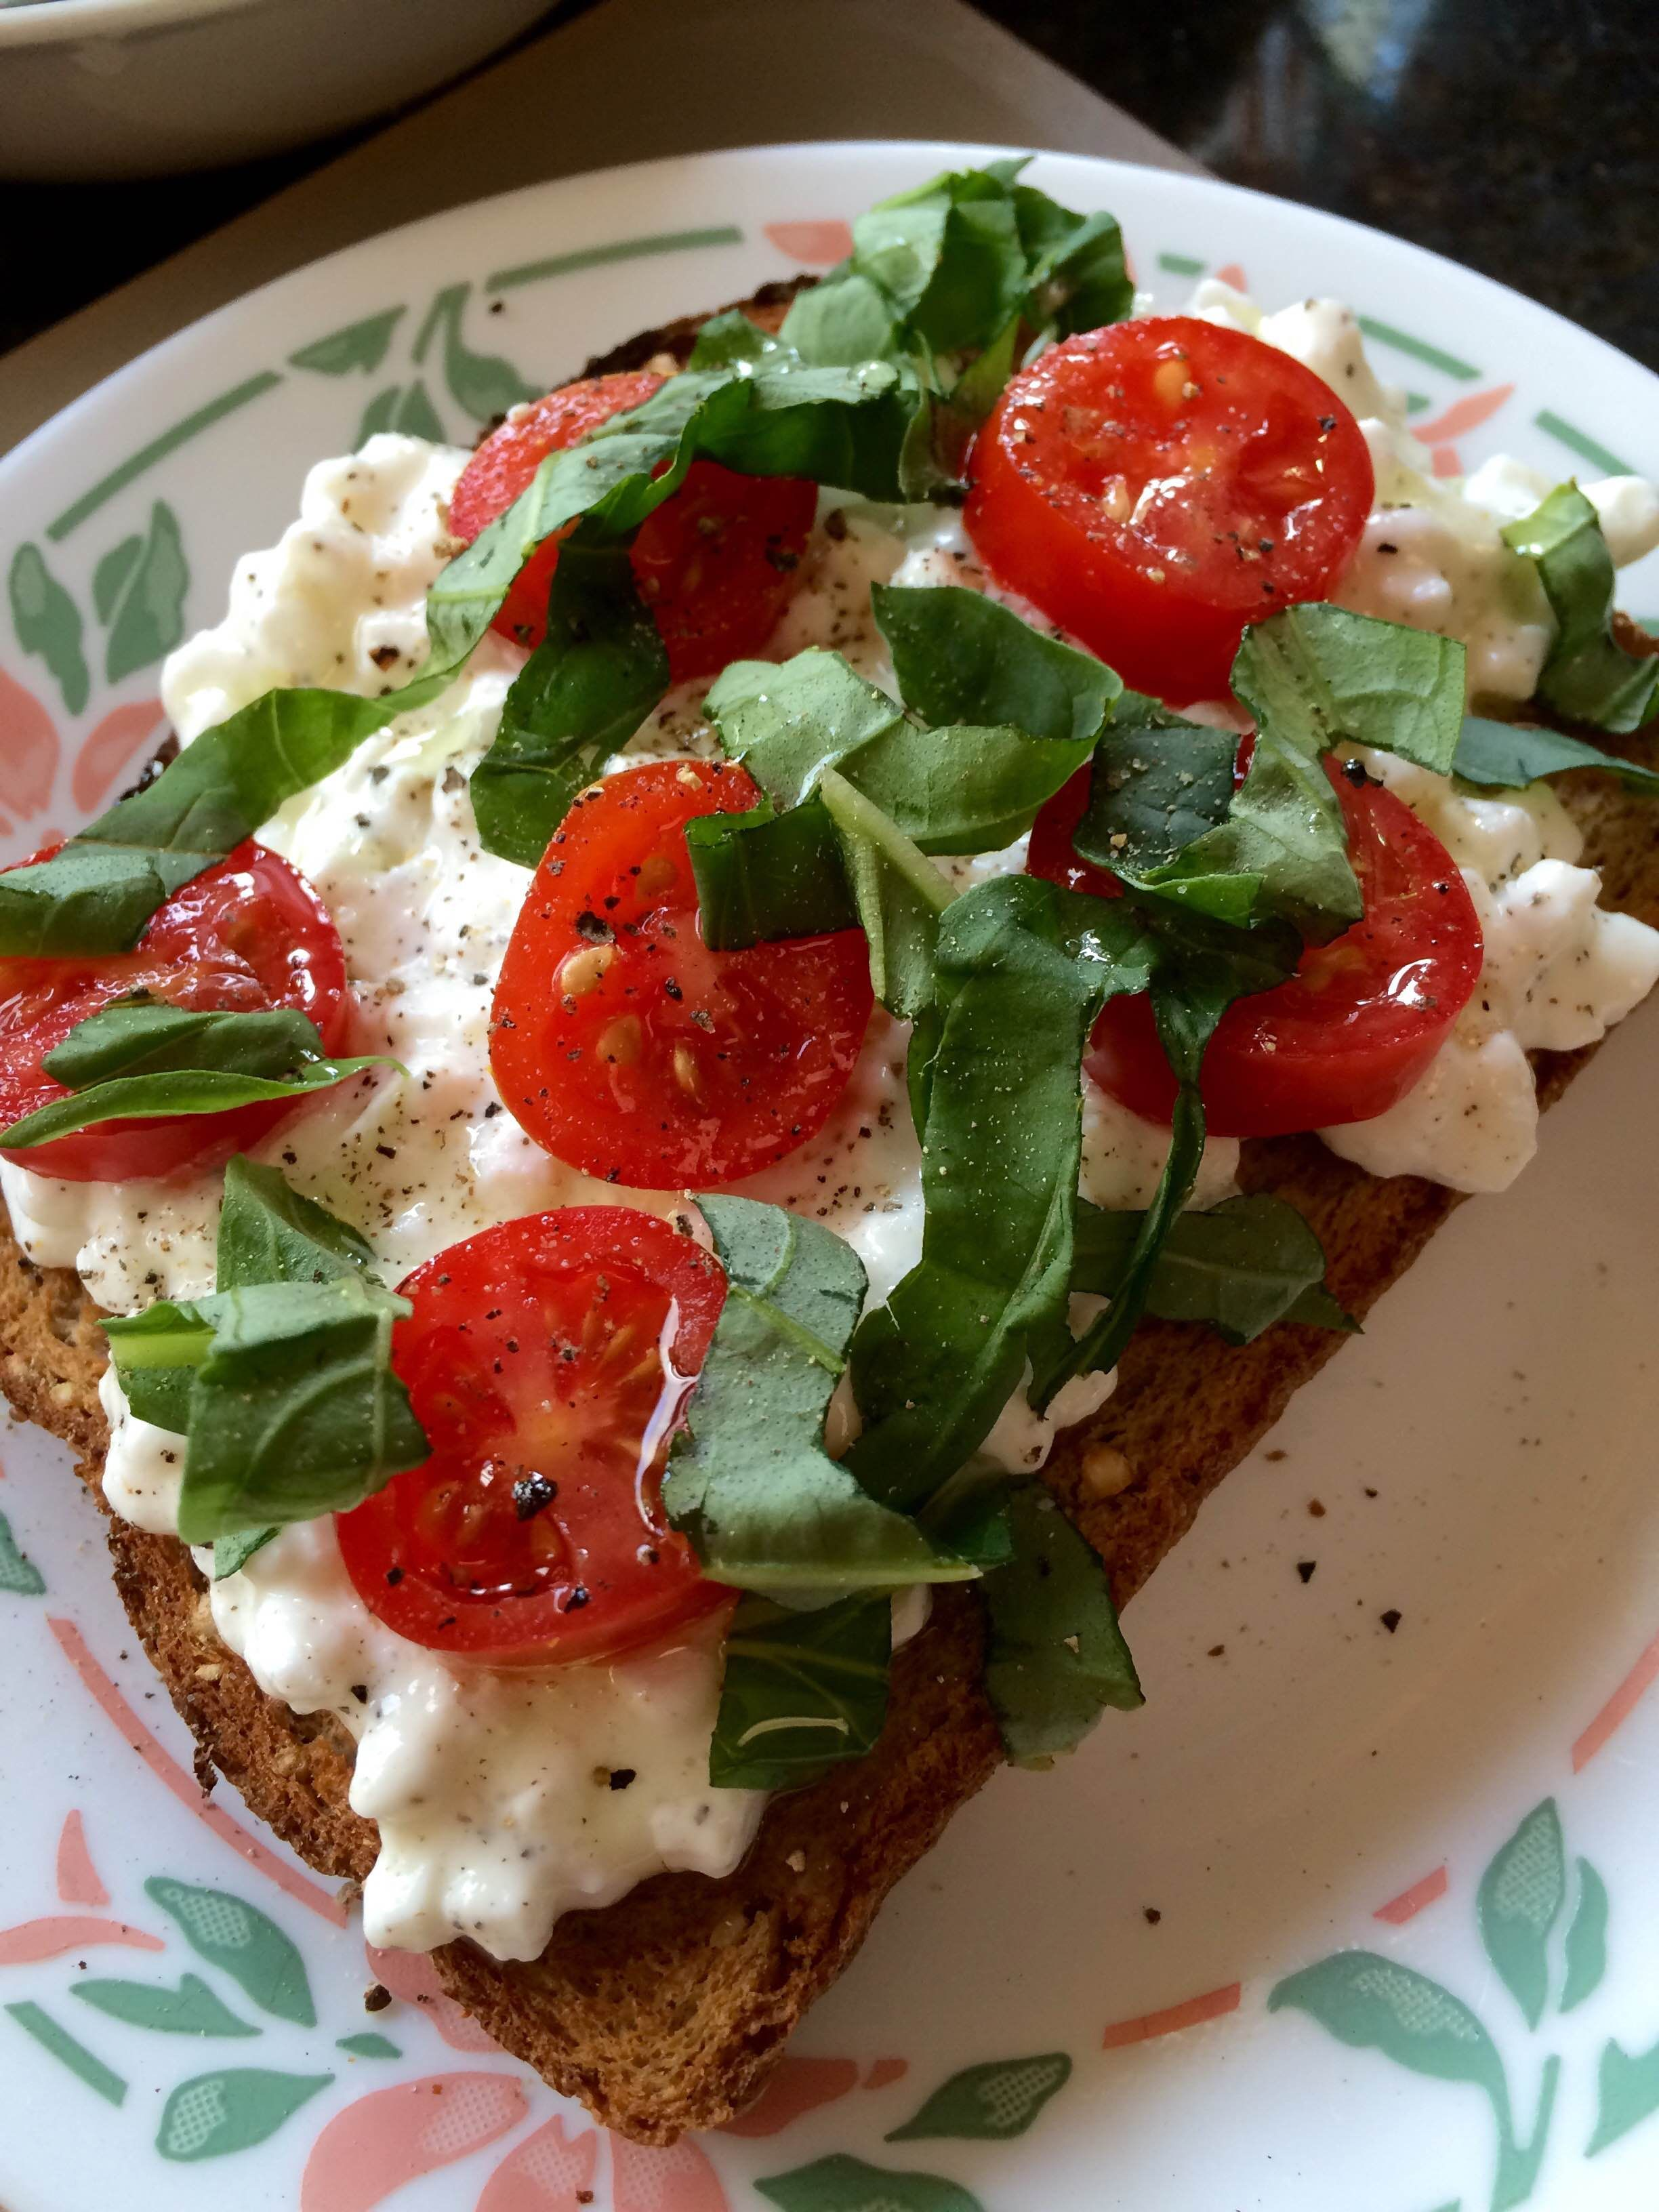 cottage cheese toast ideas toast ideas daisy brand and cheese toast